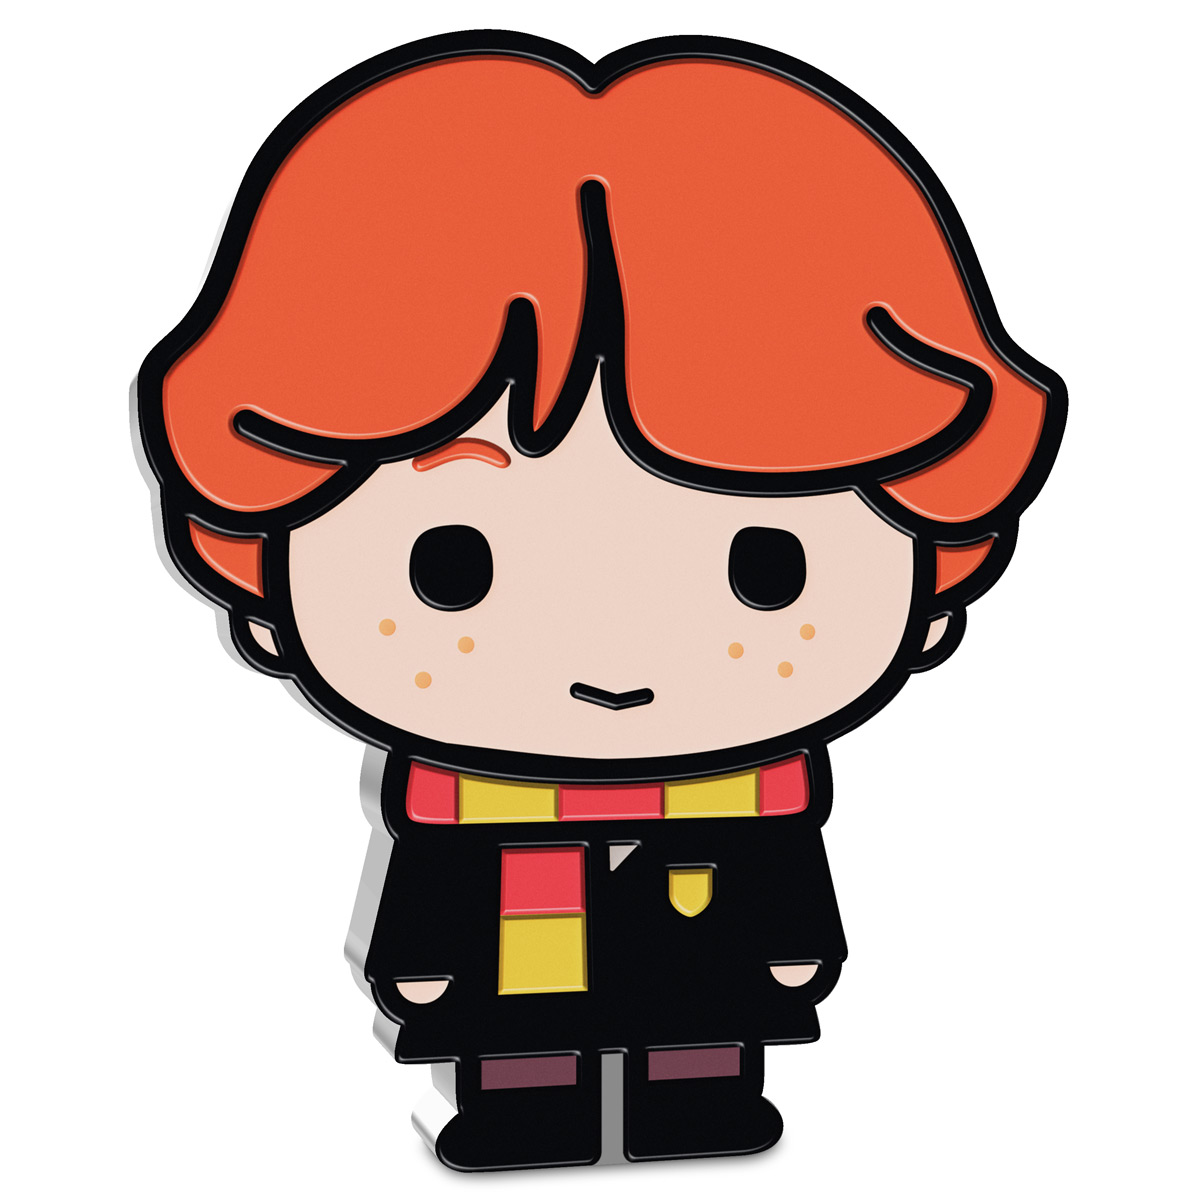 2020 Niue Harry Potter - Chibi - Ron Weasley 1 oz Silver Colorized Proof $2 Coin GEM Proof OGP